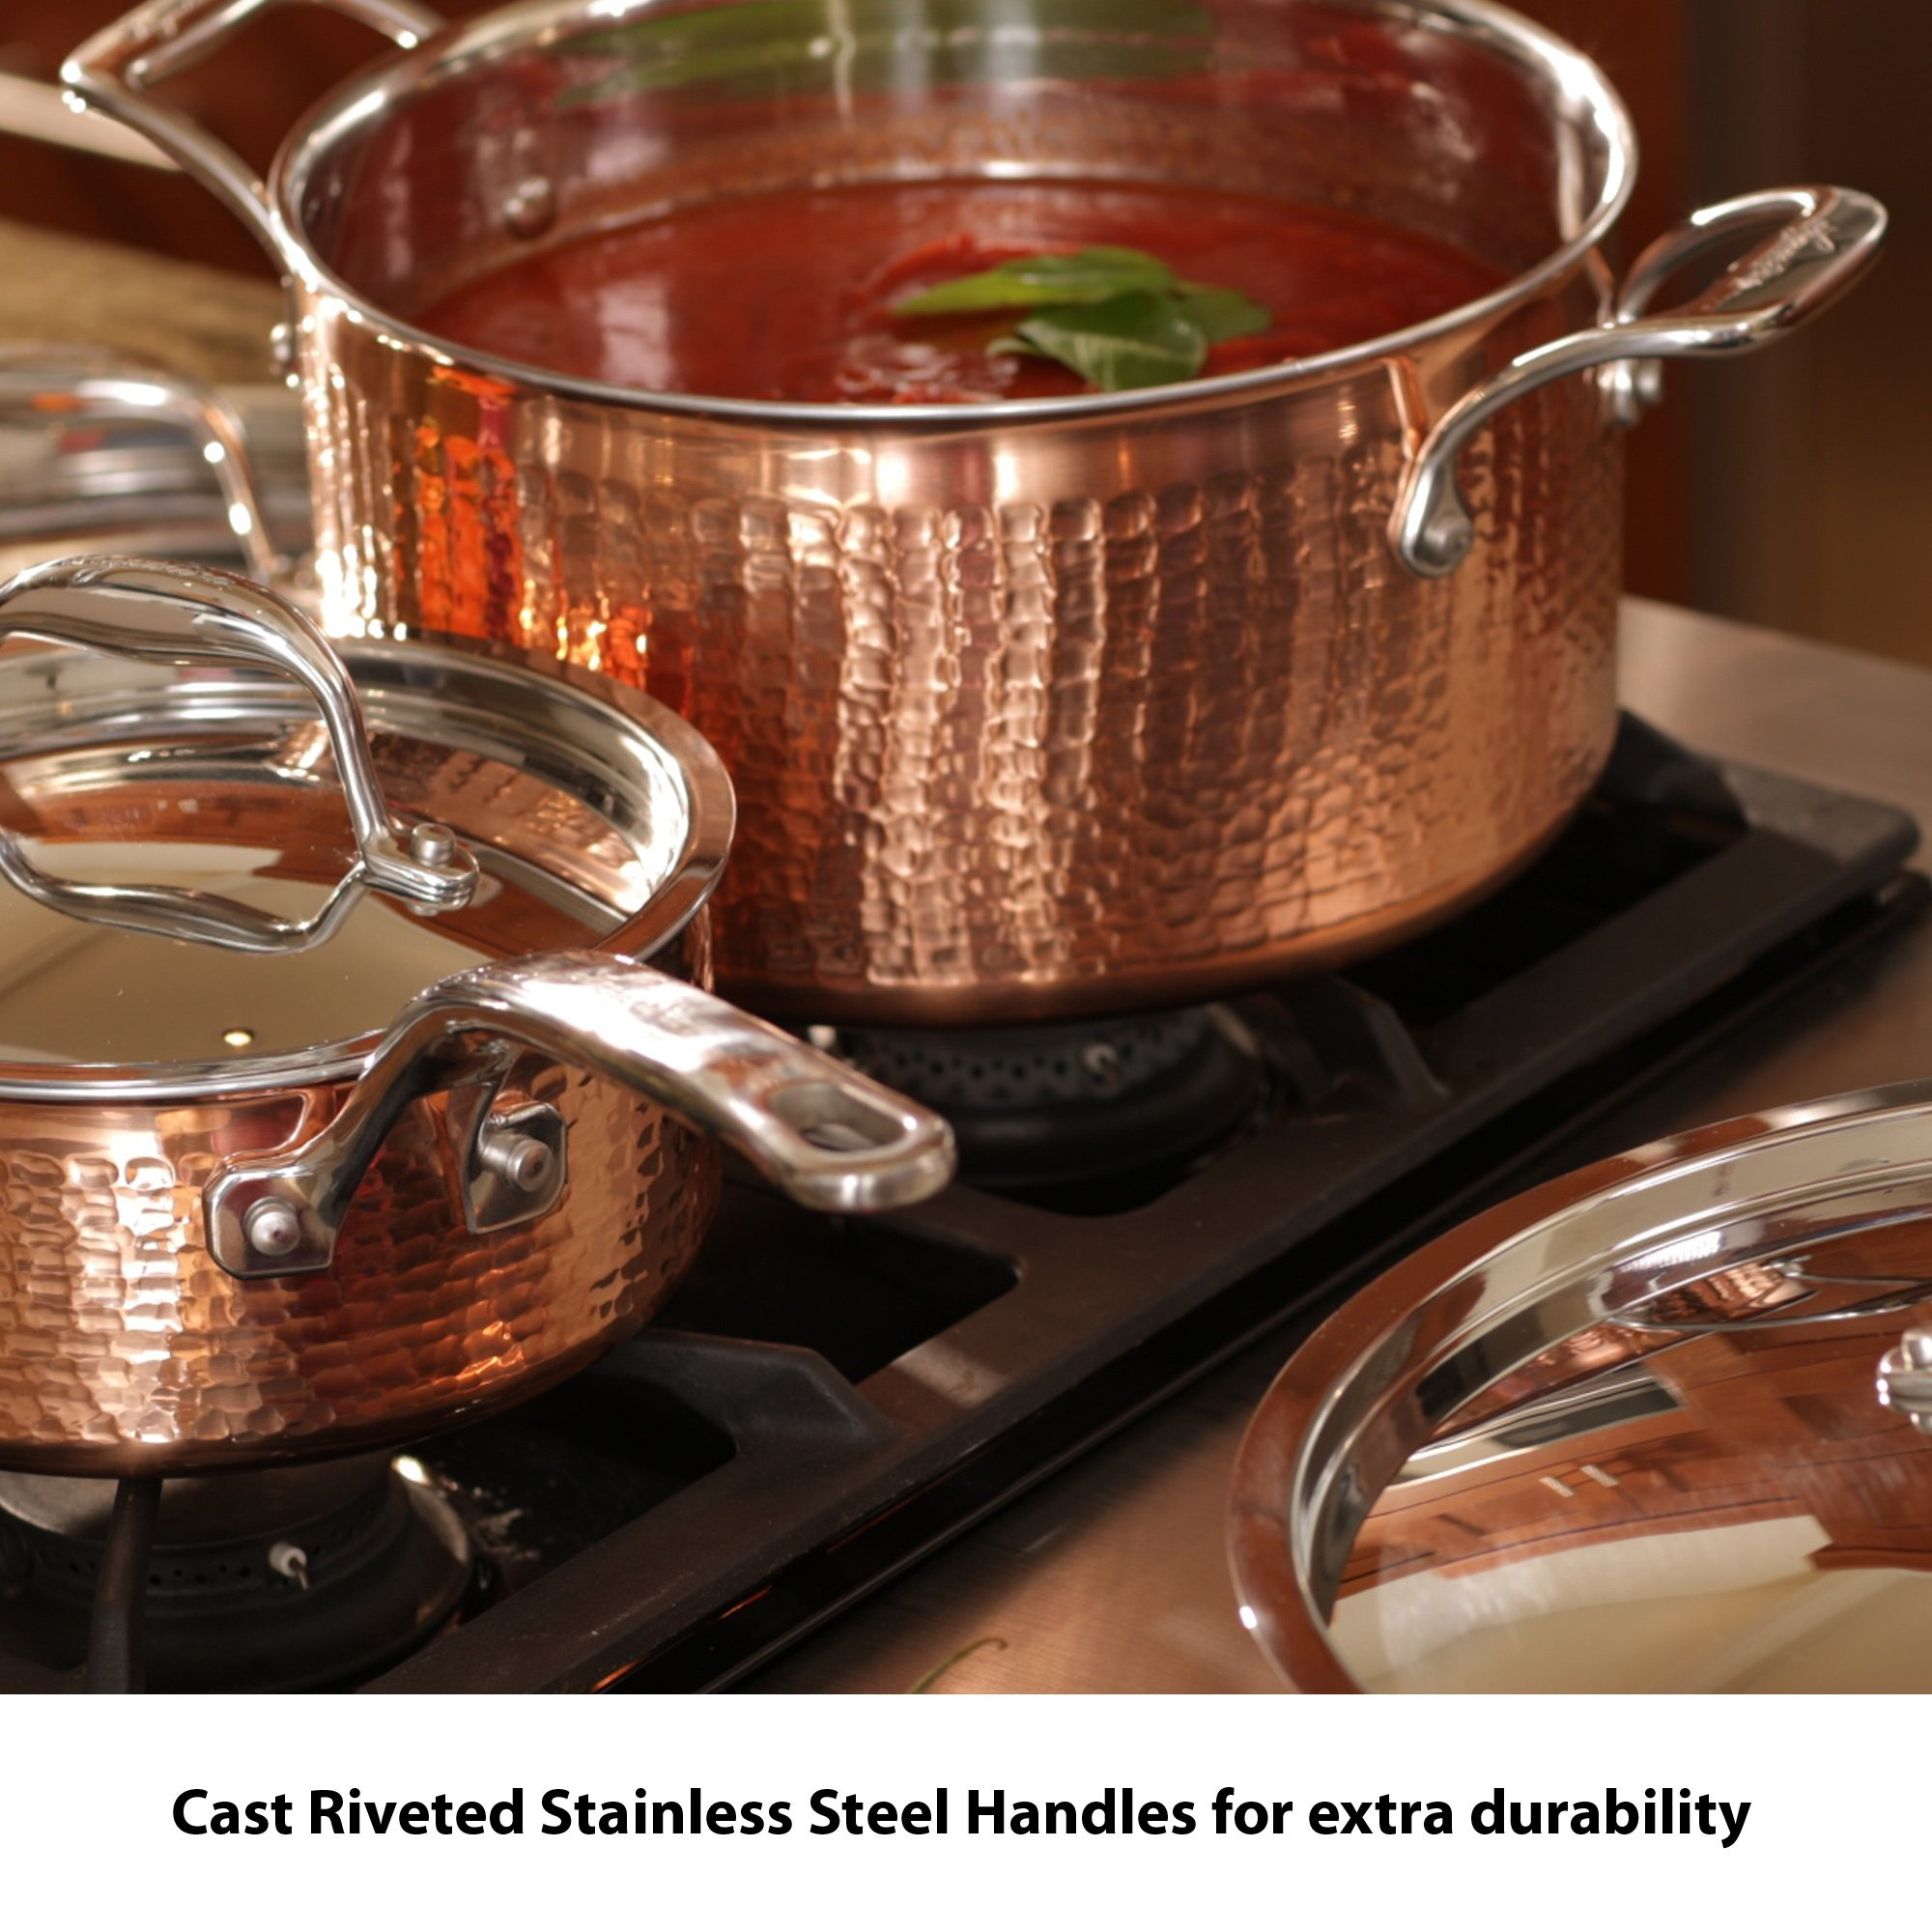 Lagostina Q554SA64 Martellata Tri-ply Hammered Stainless Steel Copper Oven Safe Cookware Set, 10-Piece, Copper by Lagostina (Image #6)